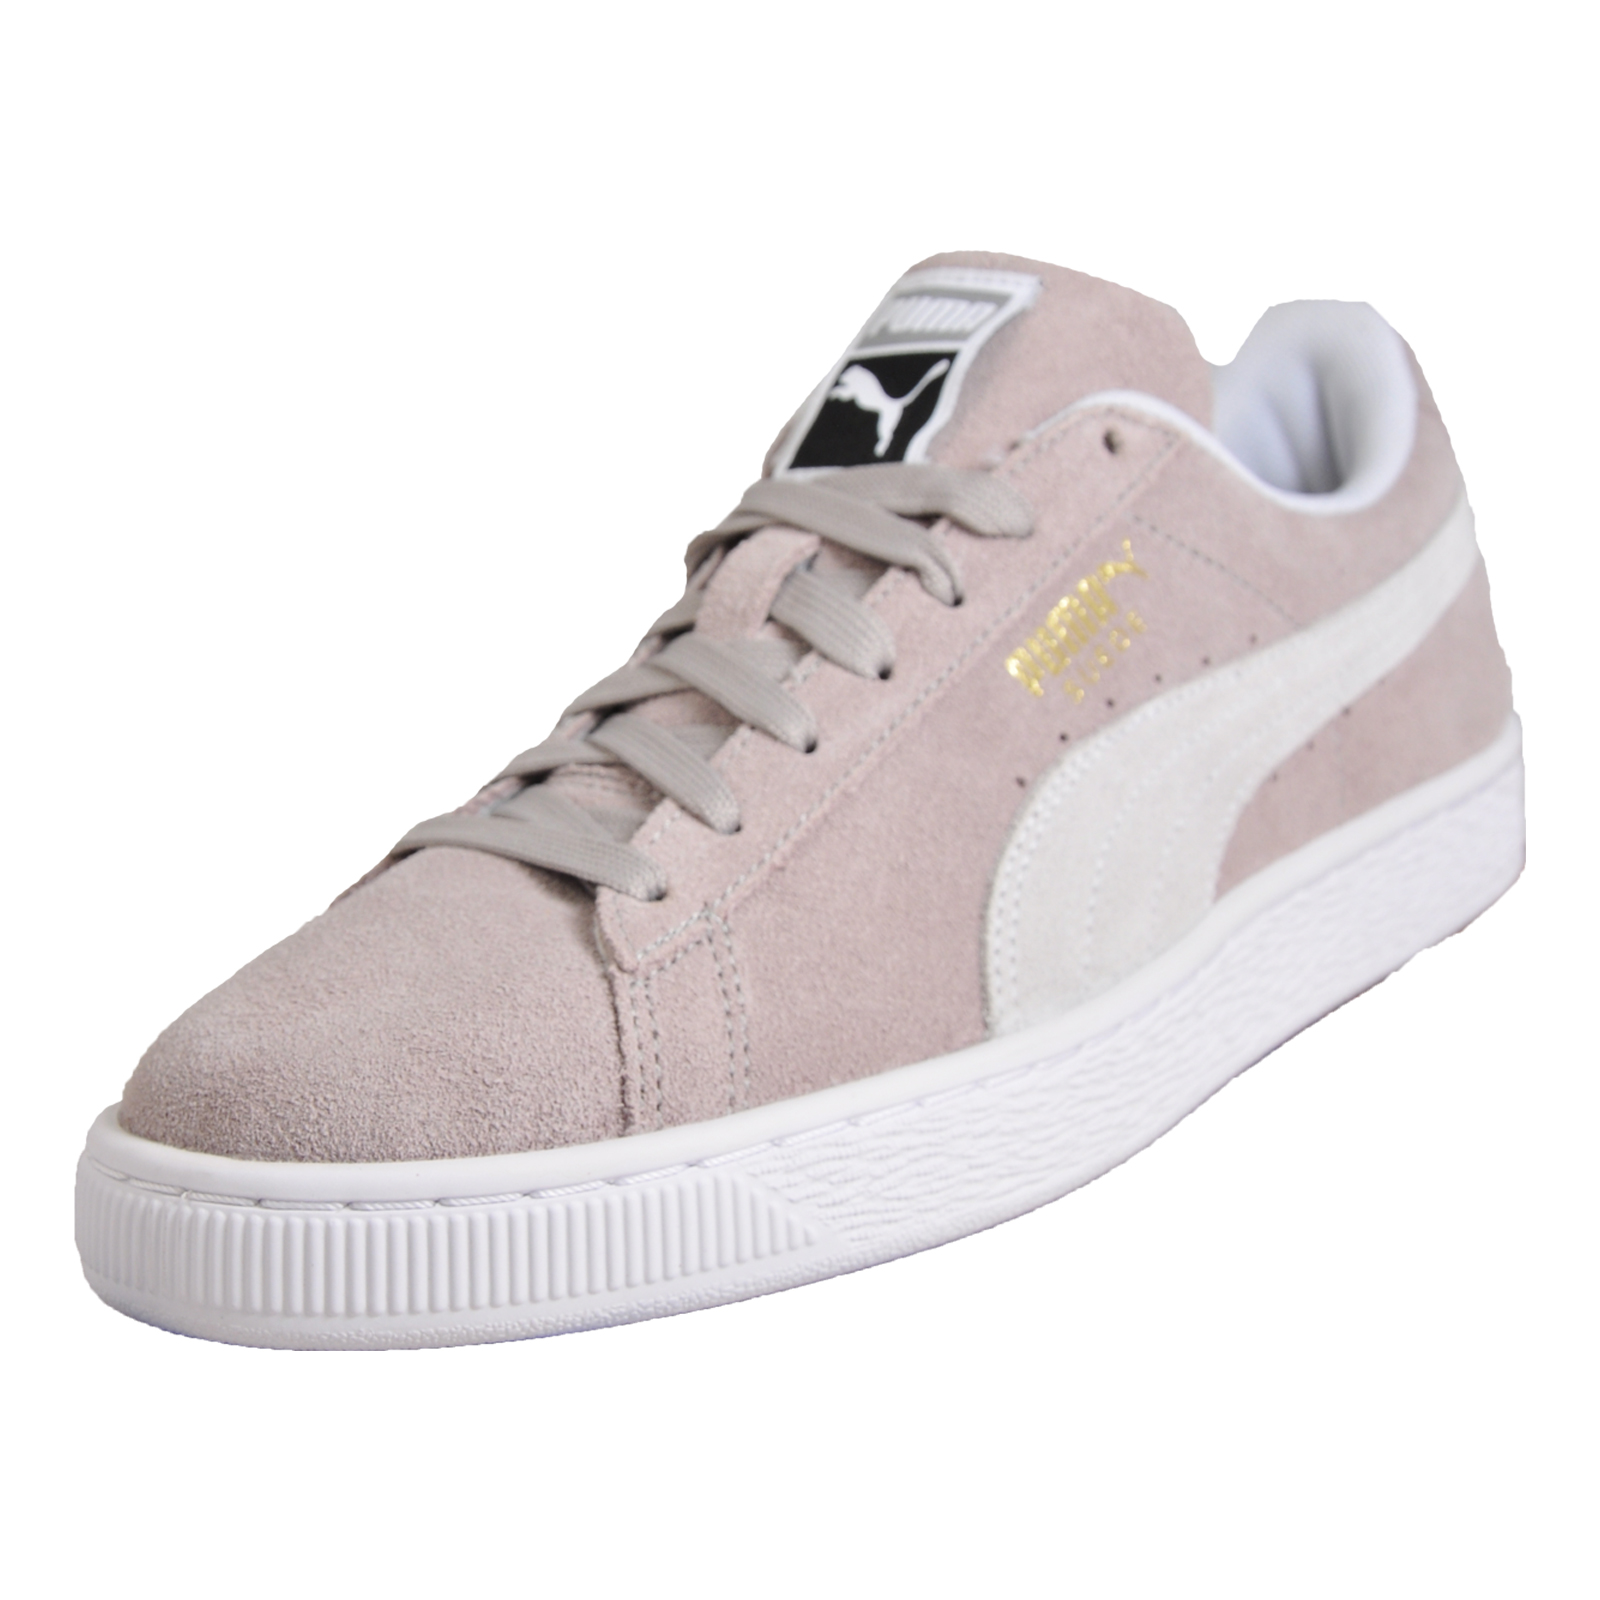 Details about Puma Suede Leather Men s Lifestyle Classic Casual Vintage  Retro Sneakers Trainer e291bba5b